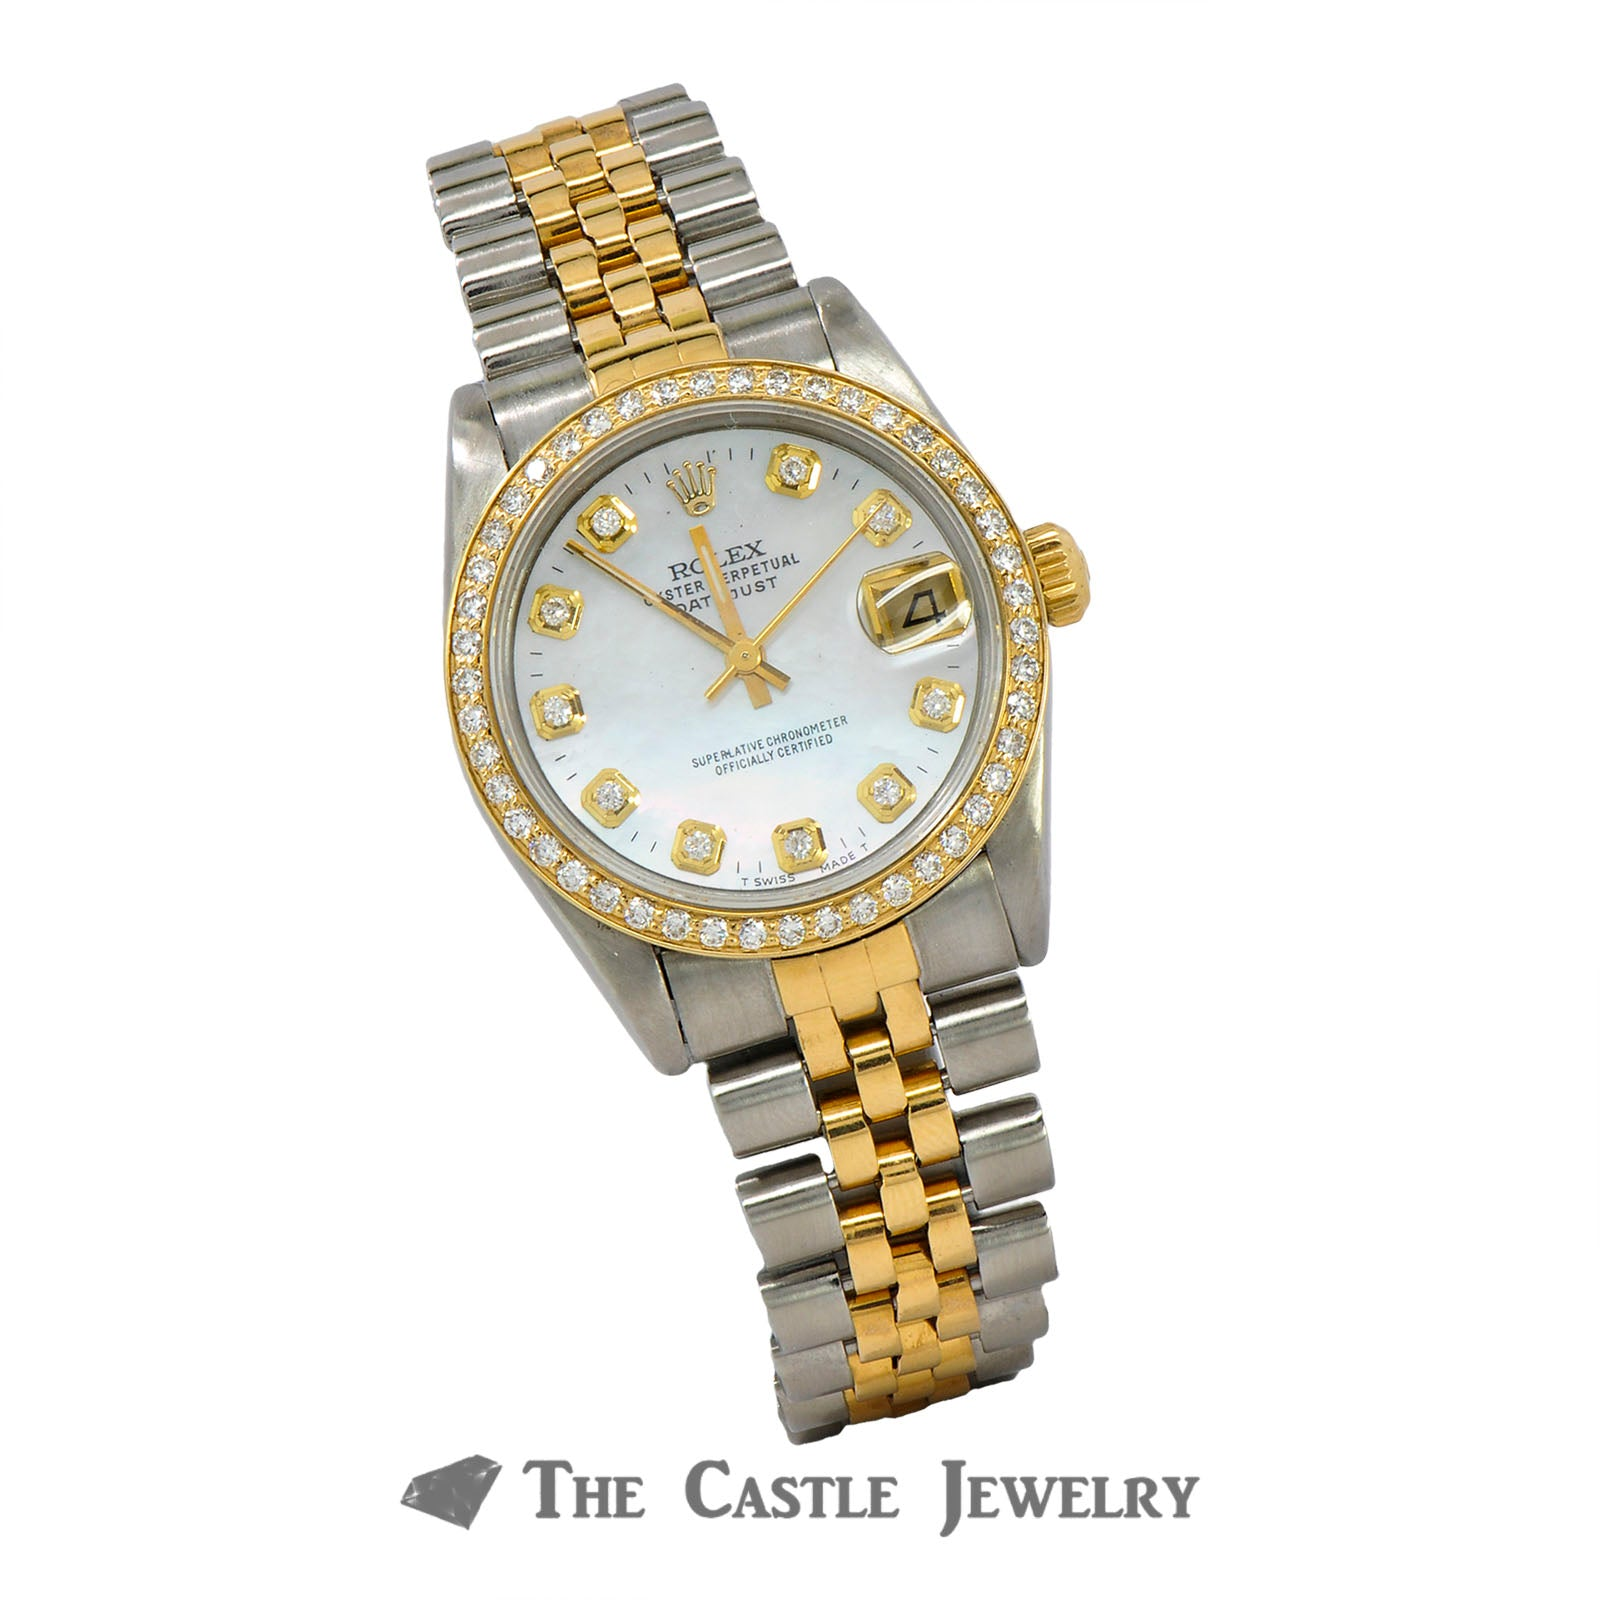 Midsized 31mm Rolex Datejust 18K/SS ref. 68273-2